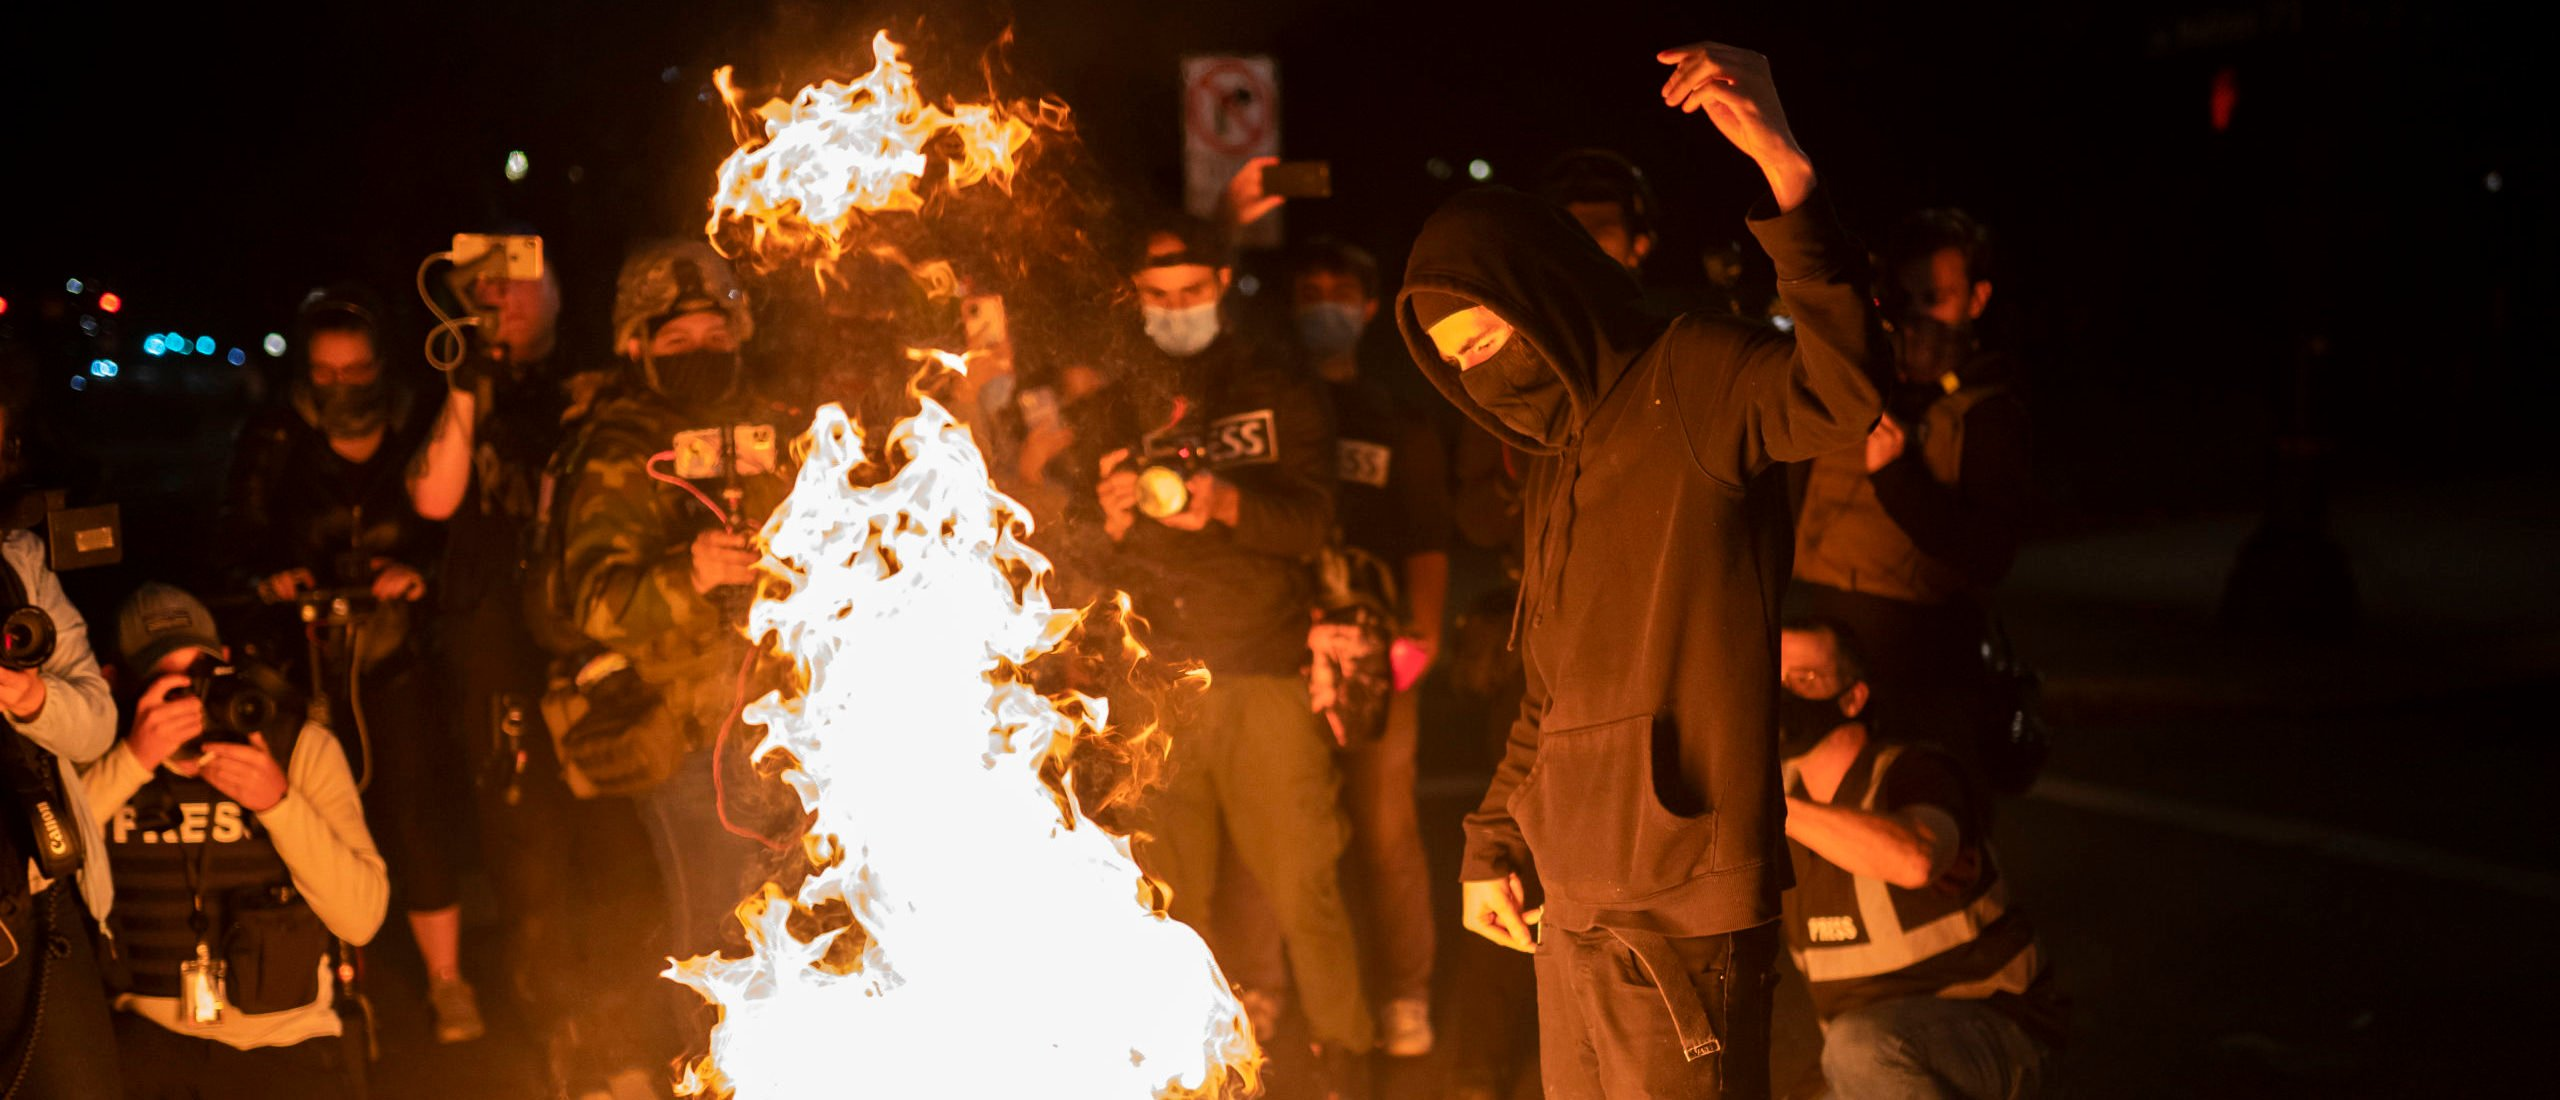 PORTLAND, OR - SEPTEMBER 26: A protester burns an American flag on September 26, 2020 in Portland, Oregon. Oregon Governor Kate Brown declared a state of emergency prior to Saturday's protest and Proud Boy rally, as fears of political violence between far-right groups and Black Lives Matter protesters grew. (Nathan Howard/Getty Images)